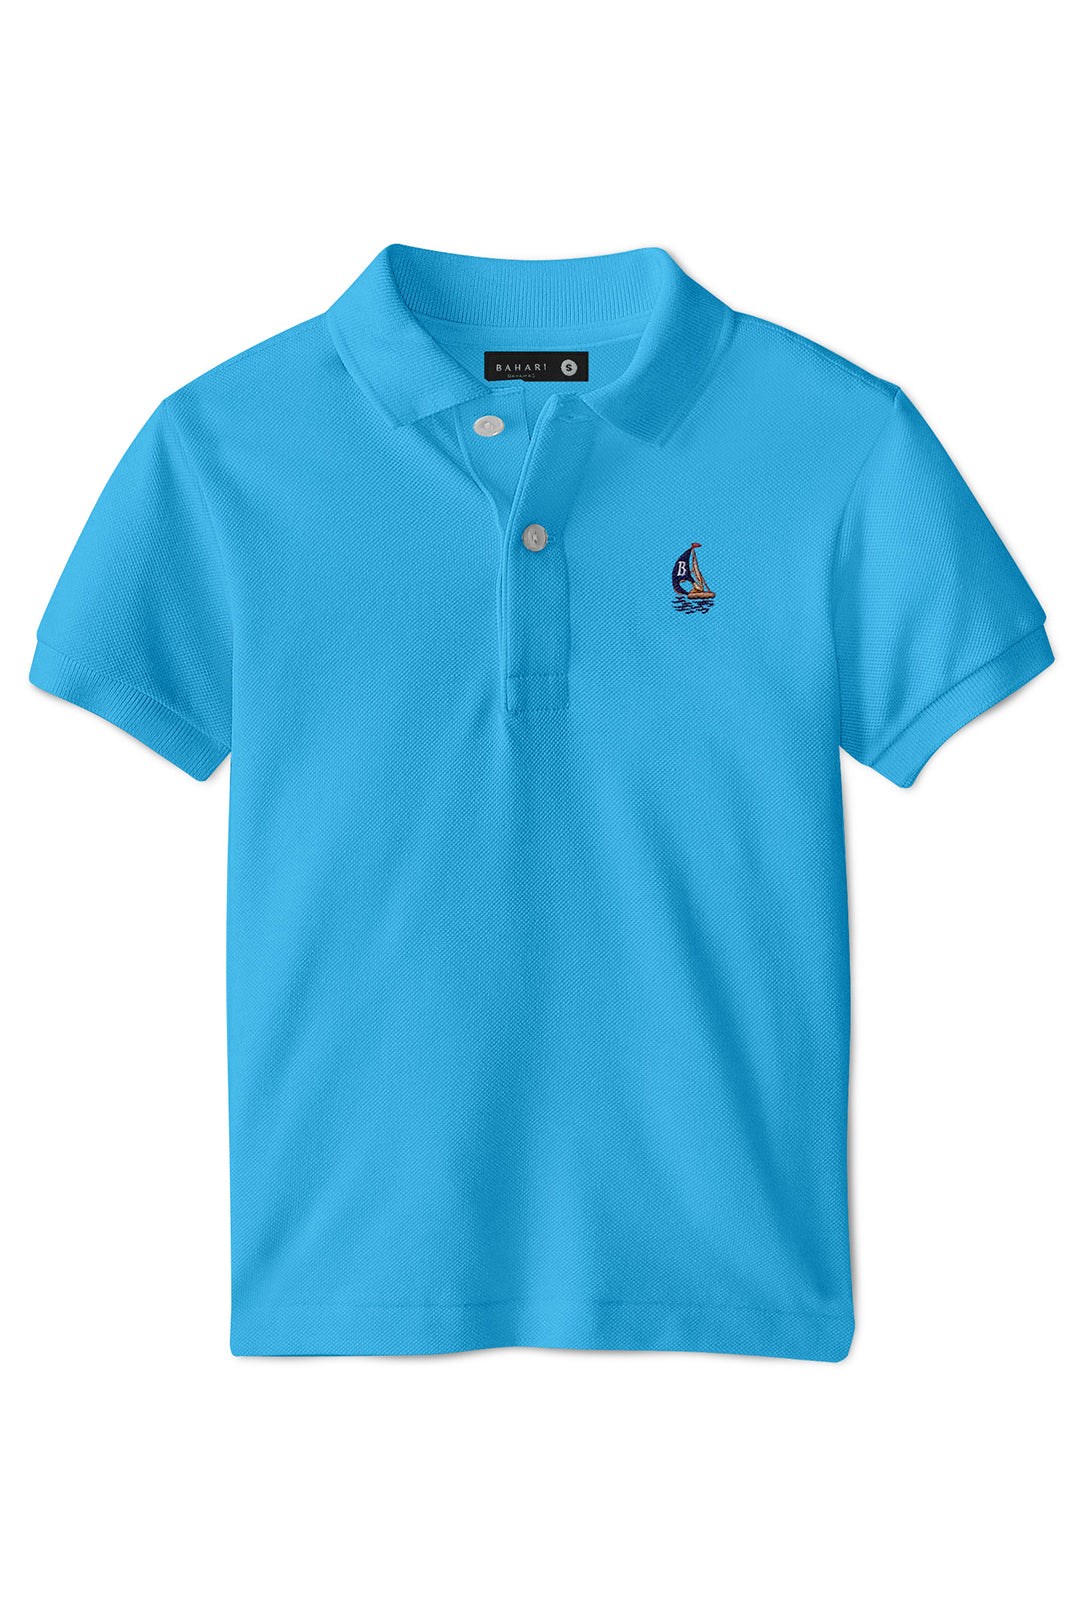 THE CLASSIC POLO- SKY